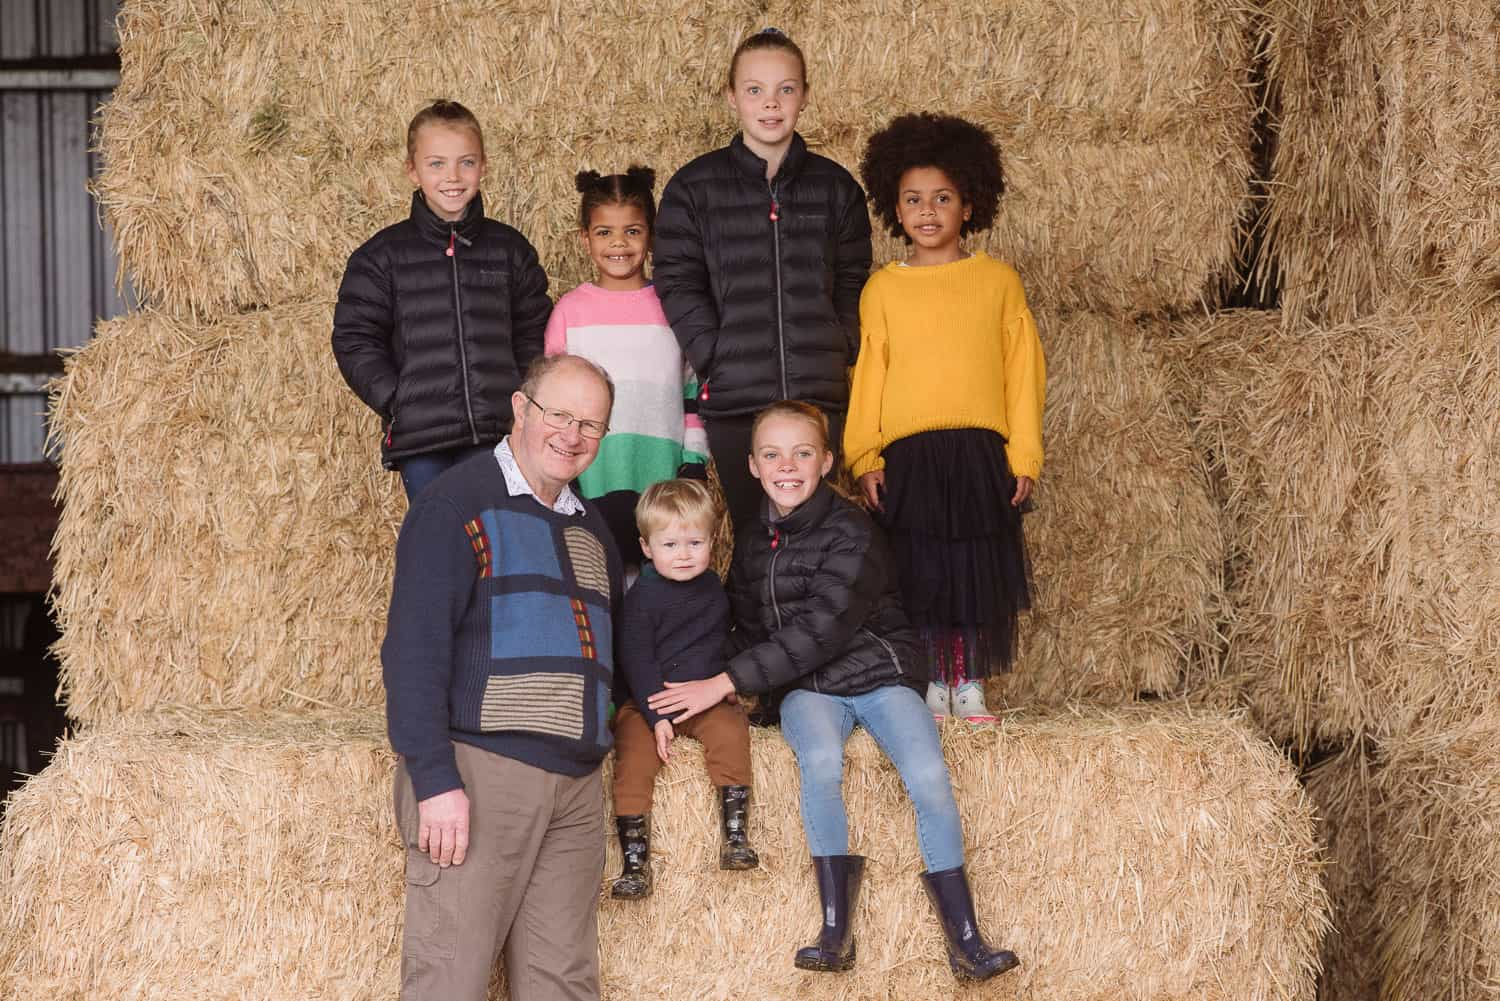 Family portrait in a hayshed